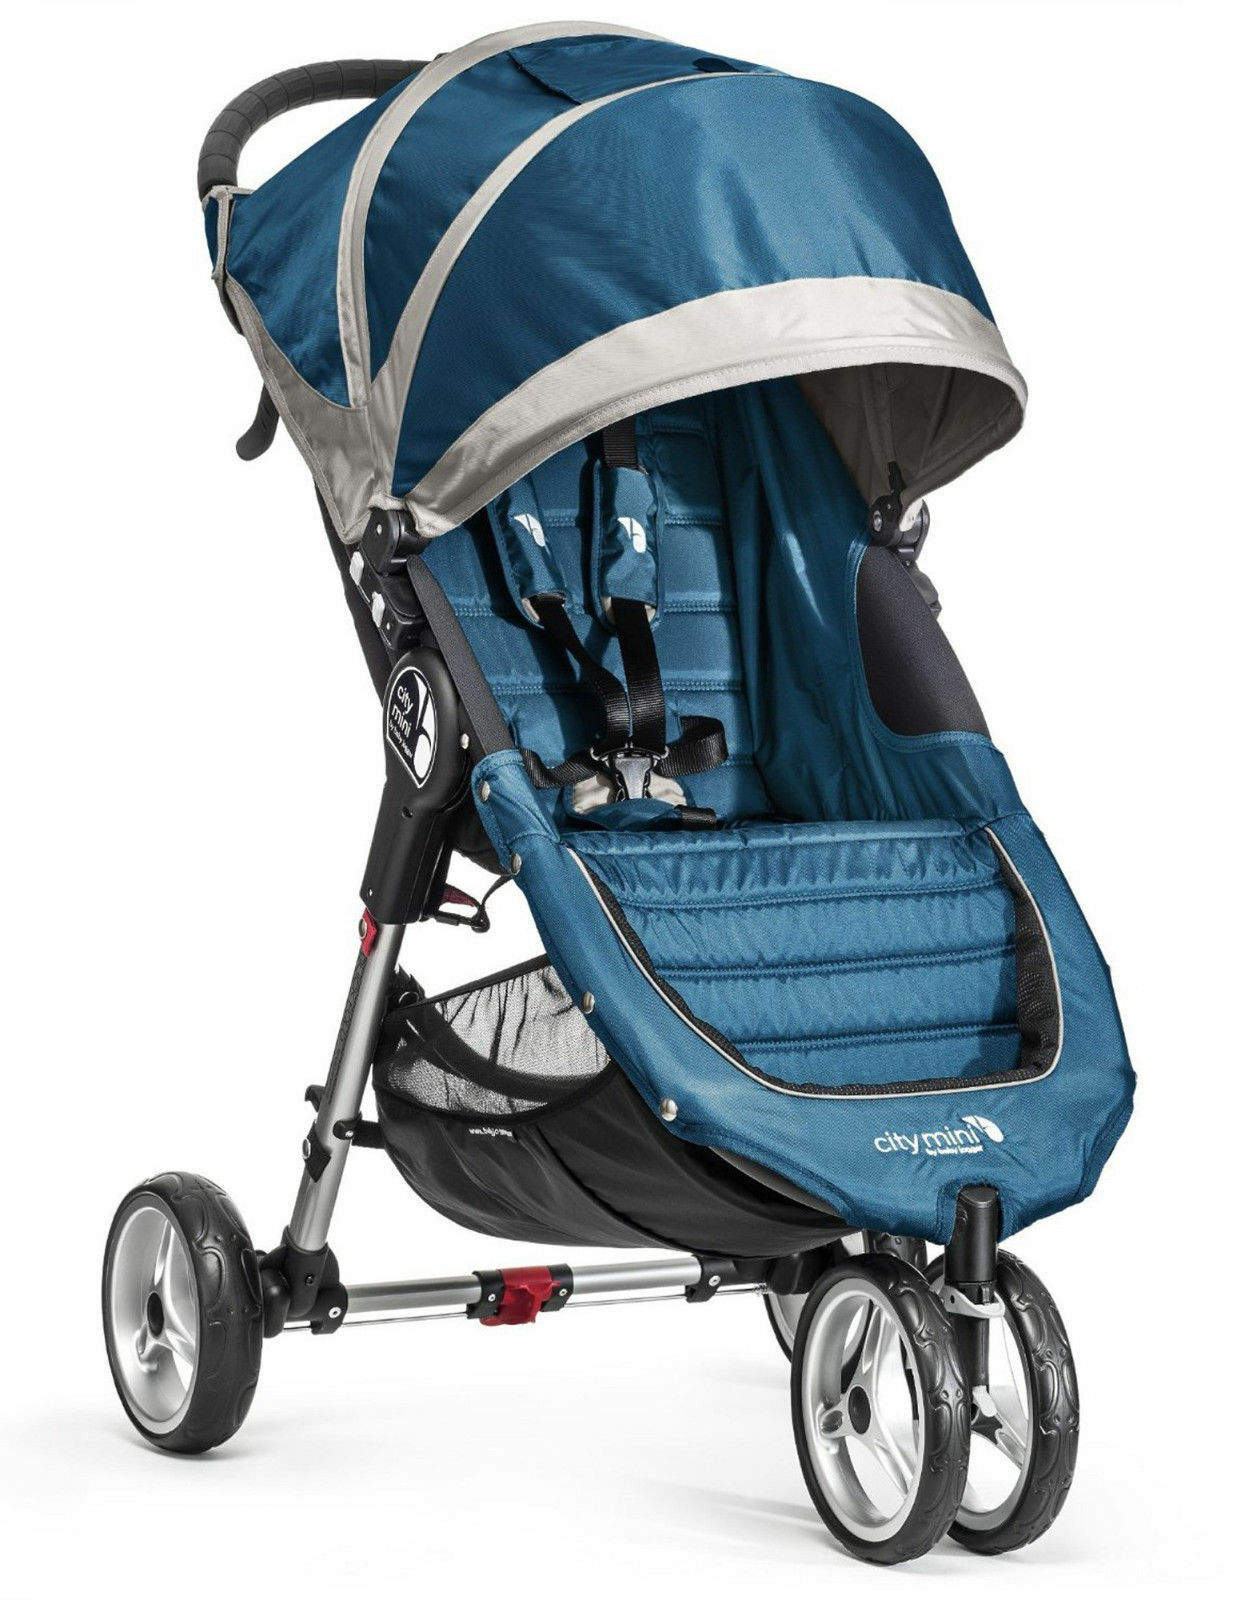 Baby Jogger City Mini Compact Lightweight 3 Wheel Stroller